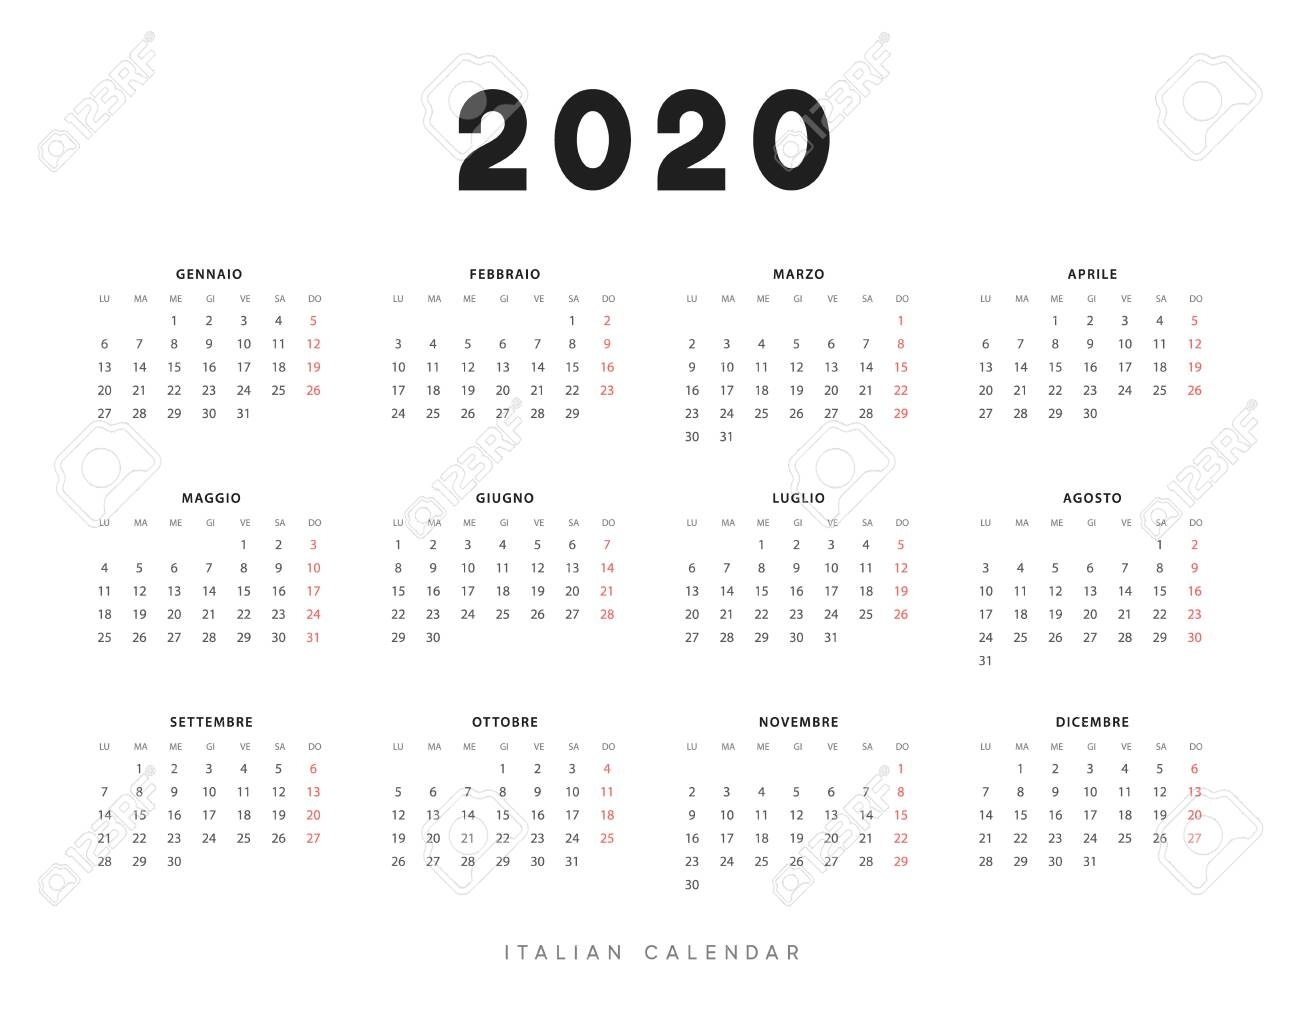 Monday Start Calendar 2020 - Colona.rsd7 intended for 2020 Calendar With Monday Start